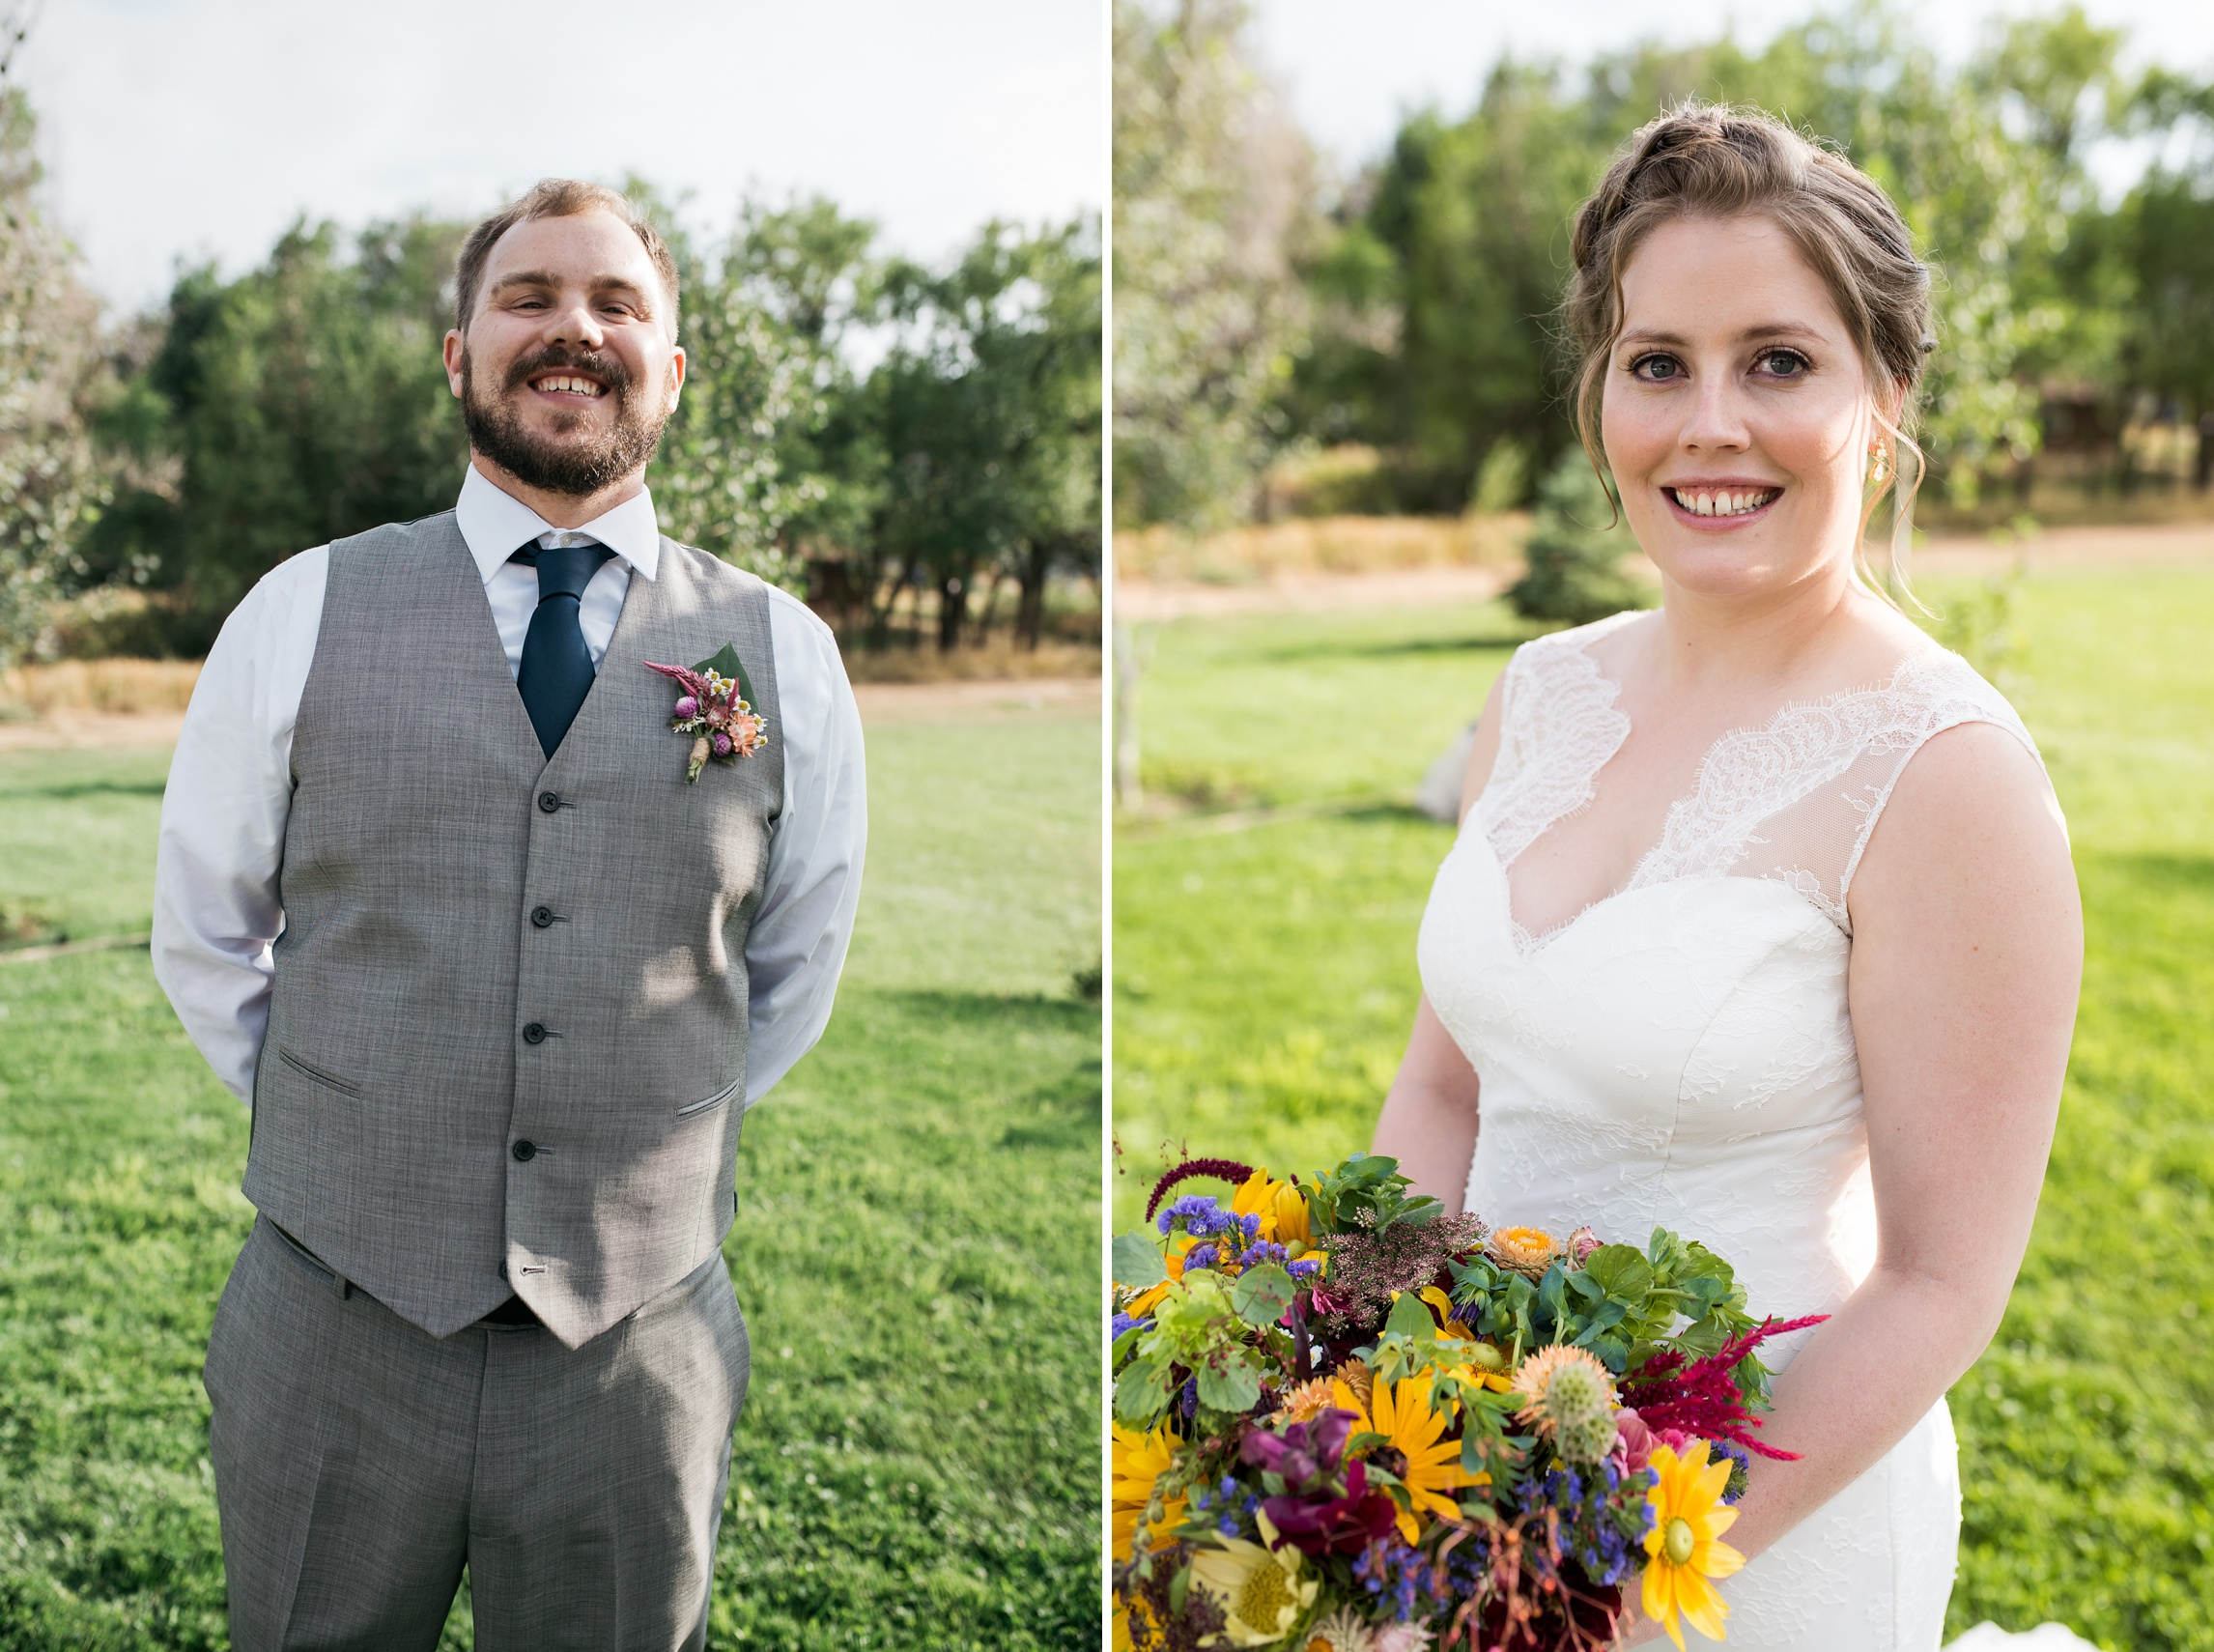 A groom and bride on their wedding day at Sylvan Dale Guest Ranch near Loveland, Colorado. Wedding photography by Sonja Salzburg of Sonja K Photography.